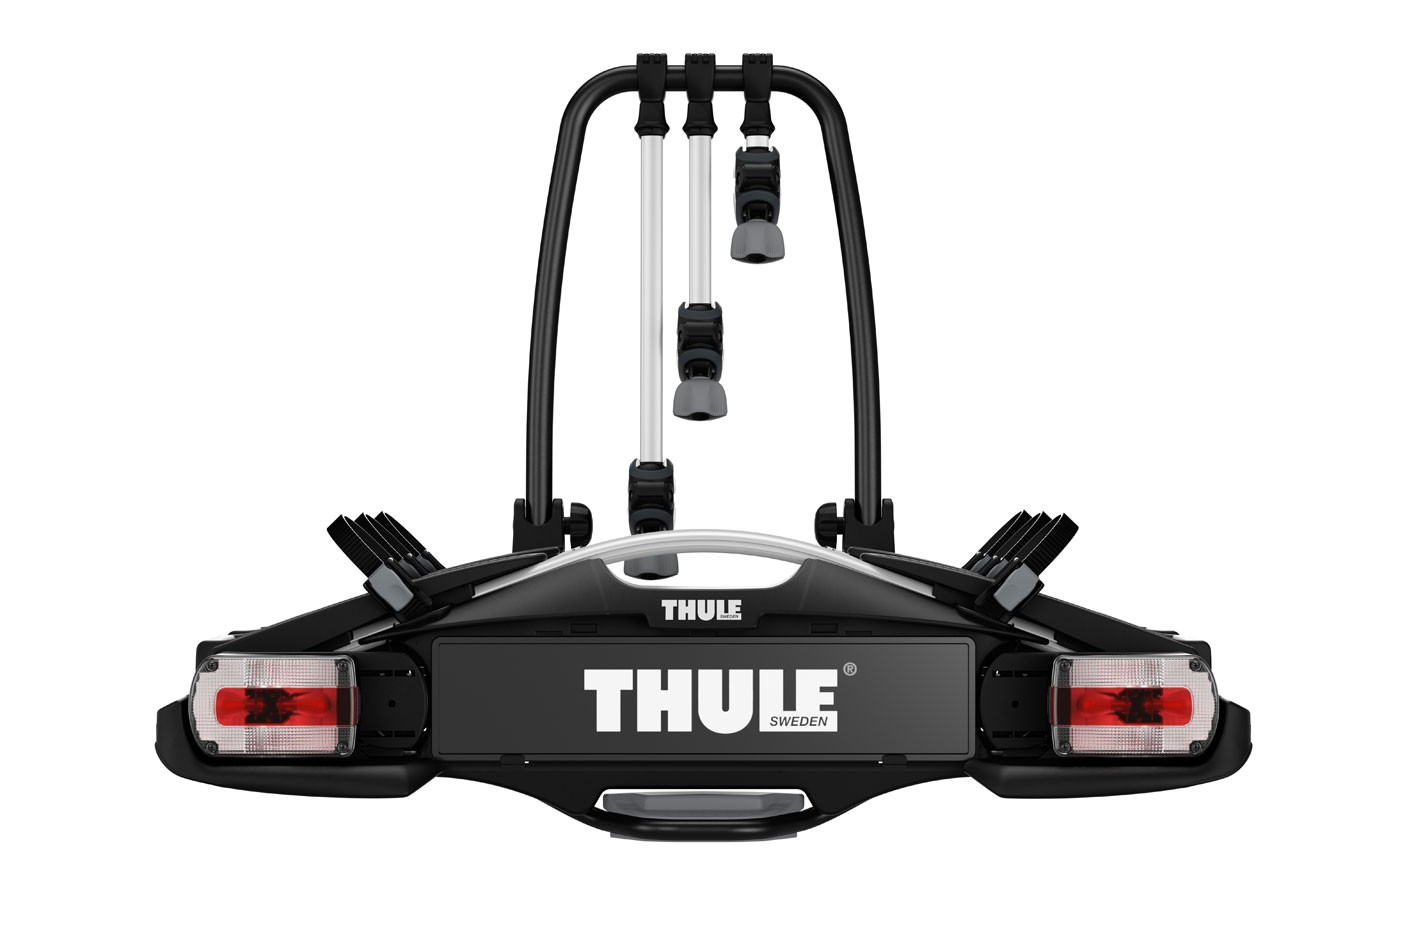 Fietsendrager - Thule 927 - VeloCompact